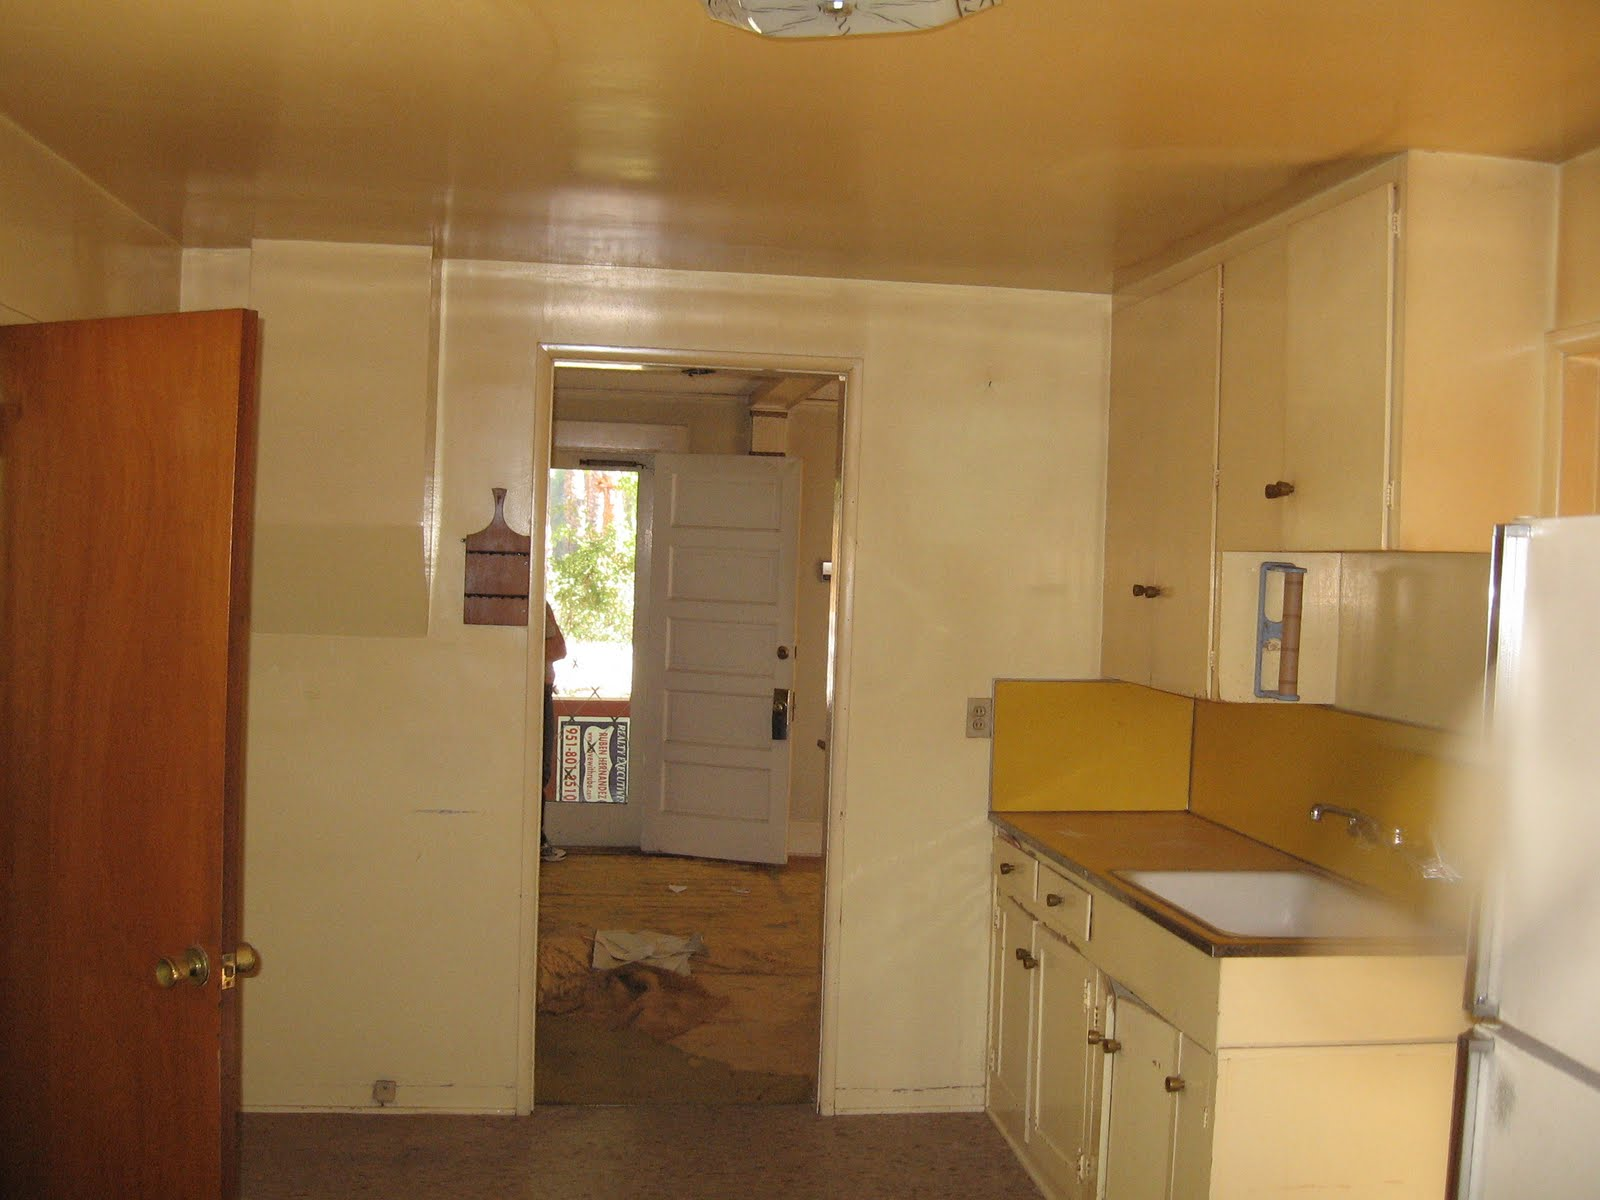 Bathroom Remodel Cost Los Angeles the story & cost of our kitchen renovation - the gardener's cottage